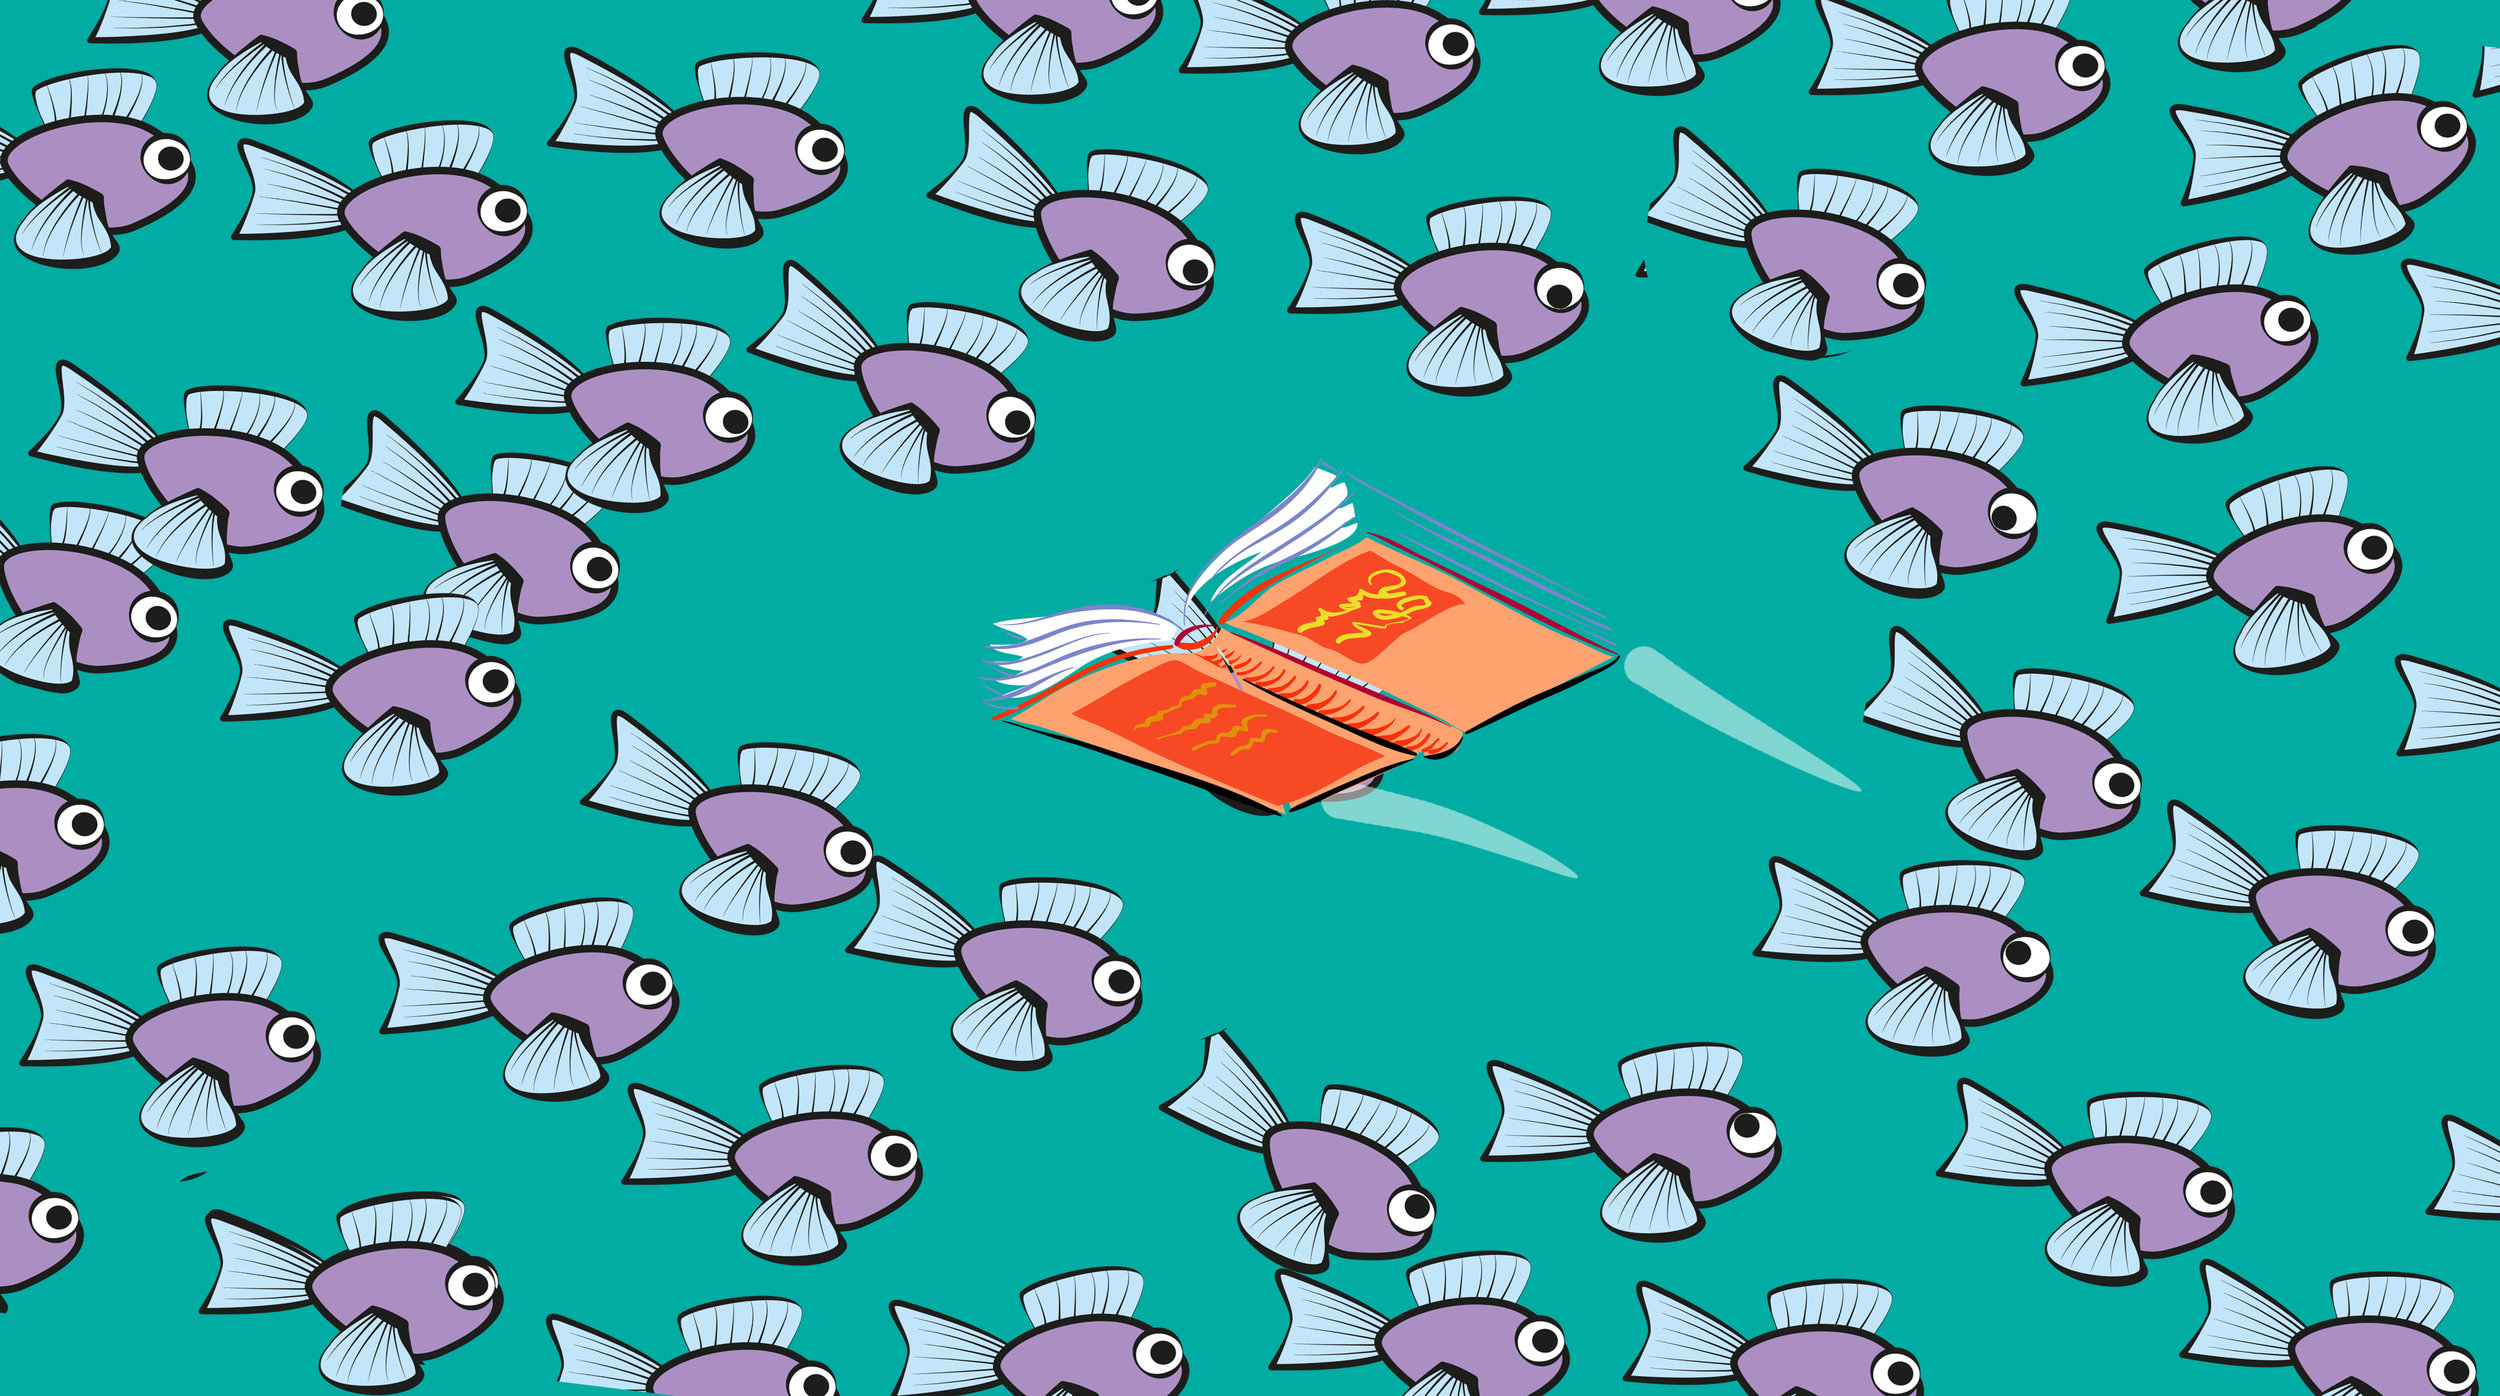 Book swimming in opposite direction of fish